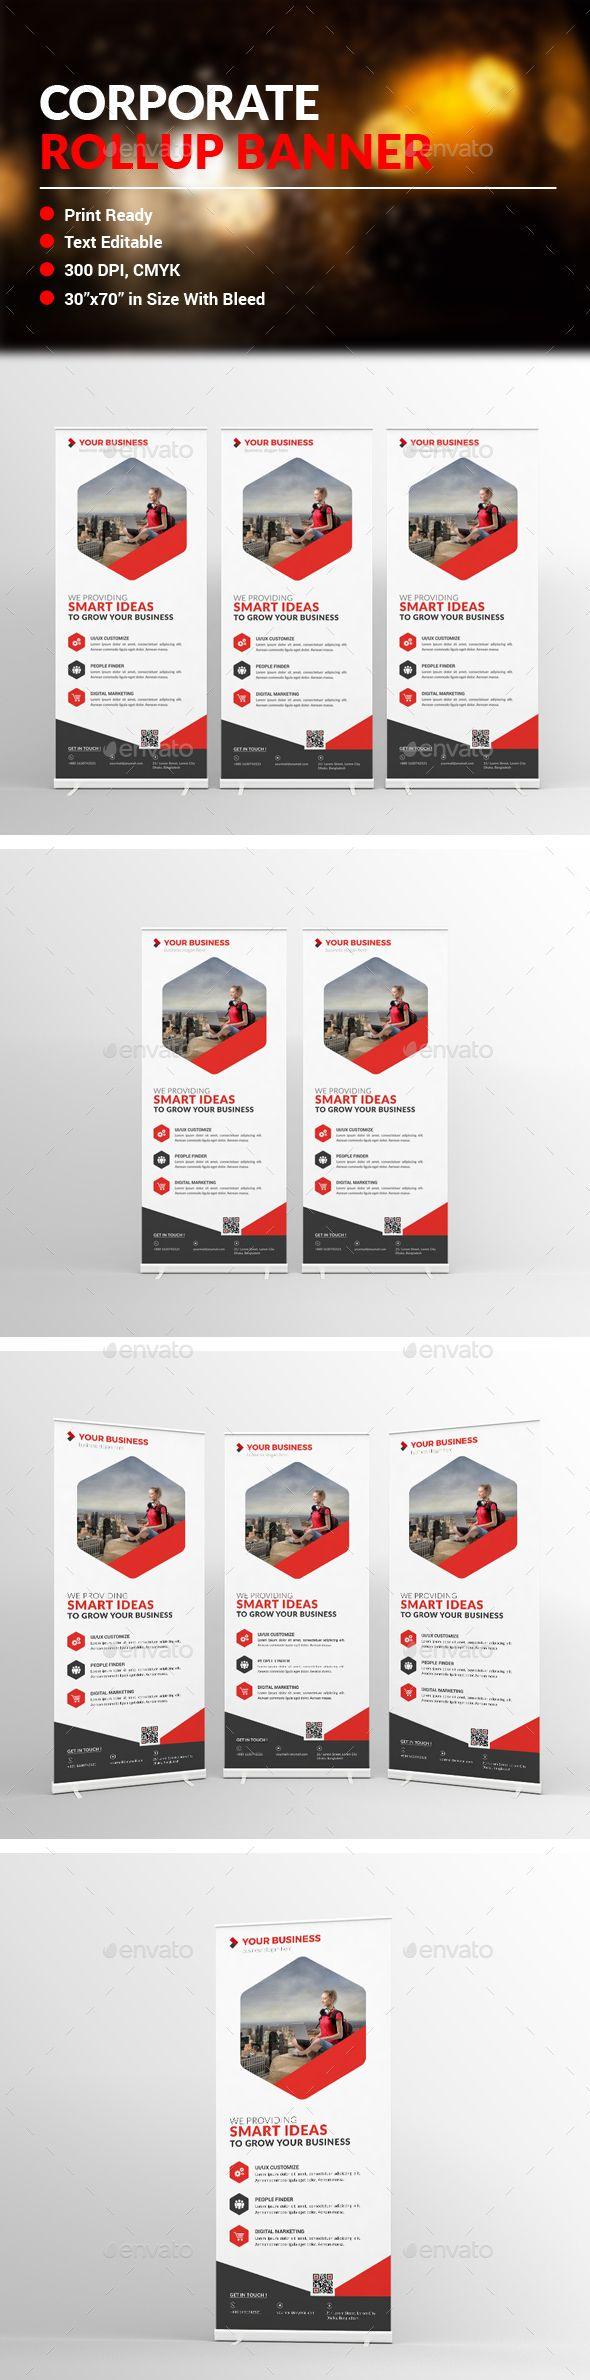 112 best Rollup Banner images on Pinterest | Creative, Editorial ...